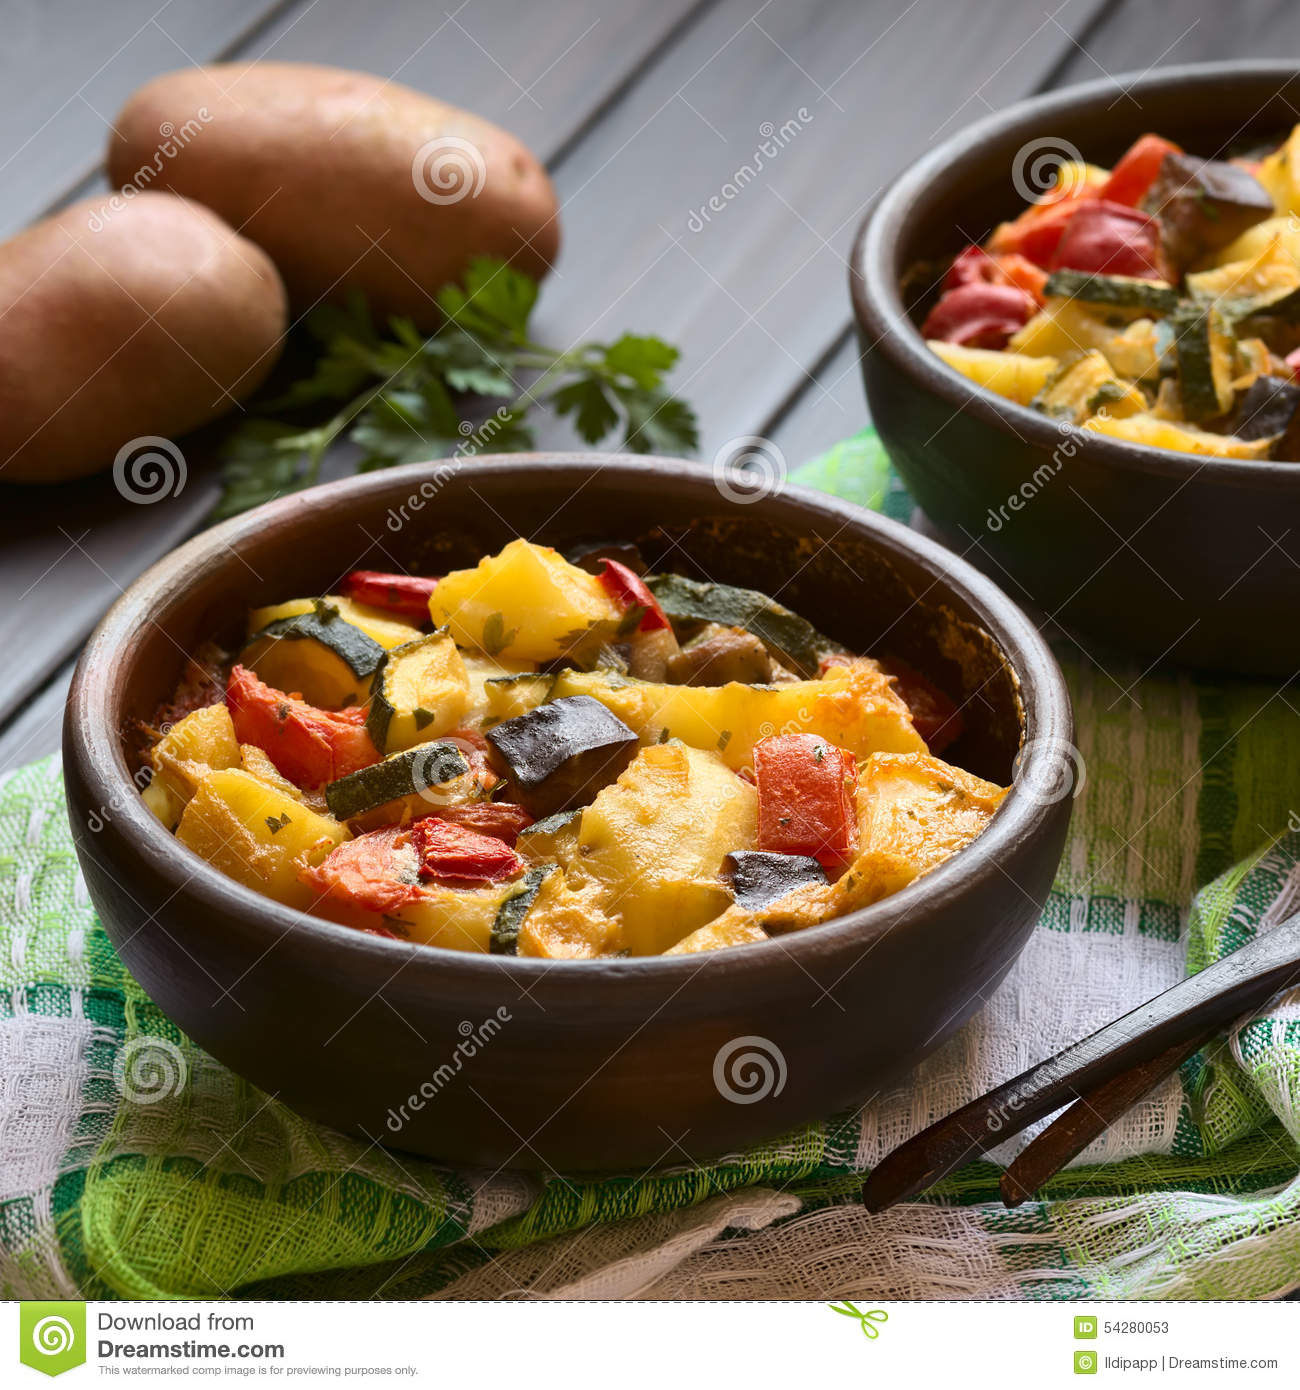 Baked Potato, Zucchini, Eggplant And Tomato Casserole Stock Photo.